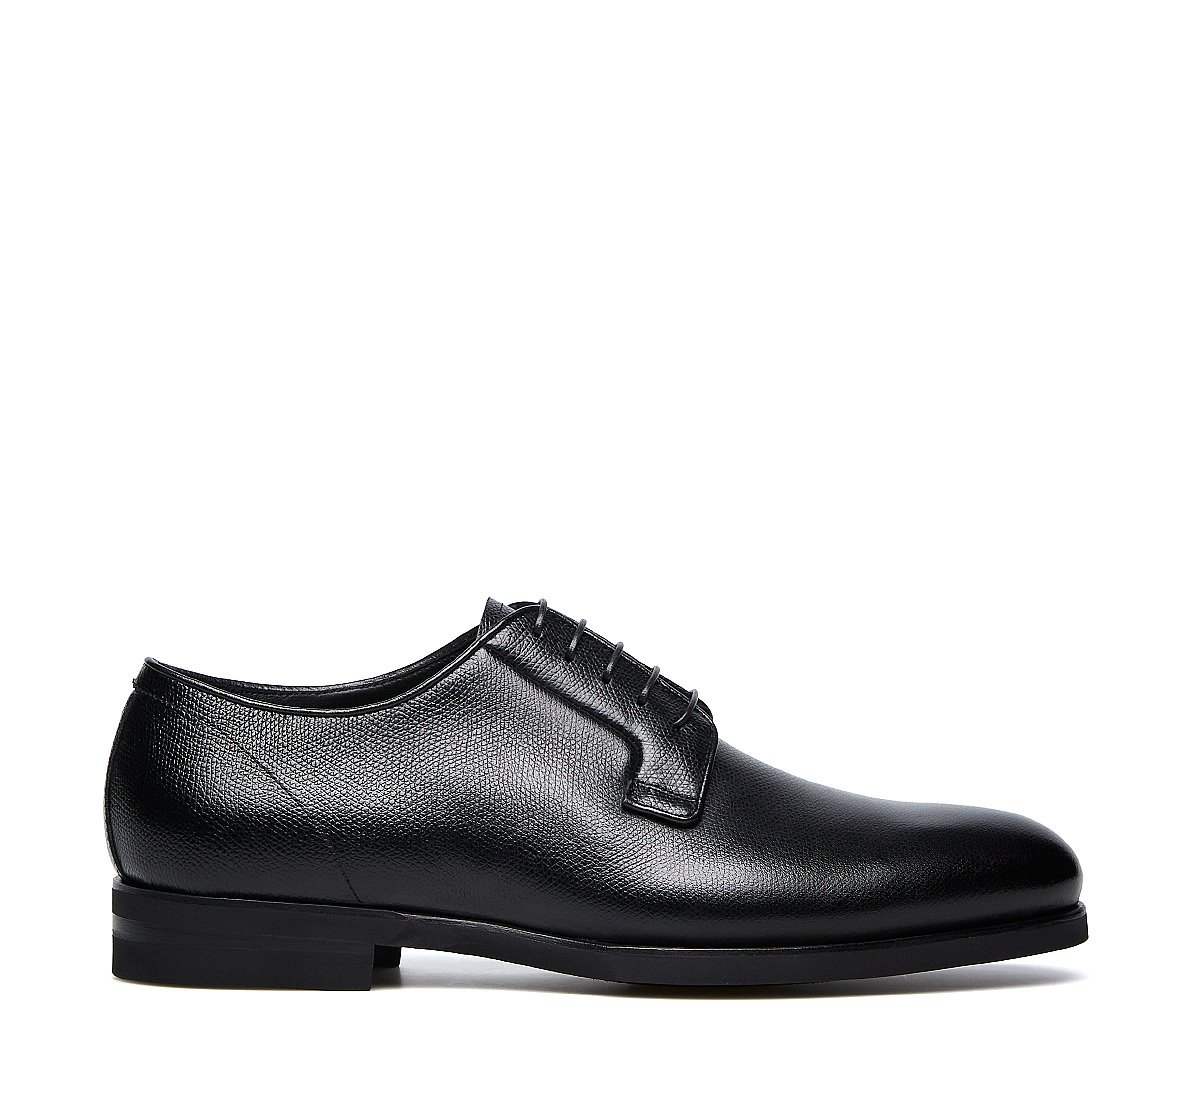 Five-eyelet derbies in calfskin